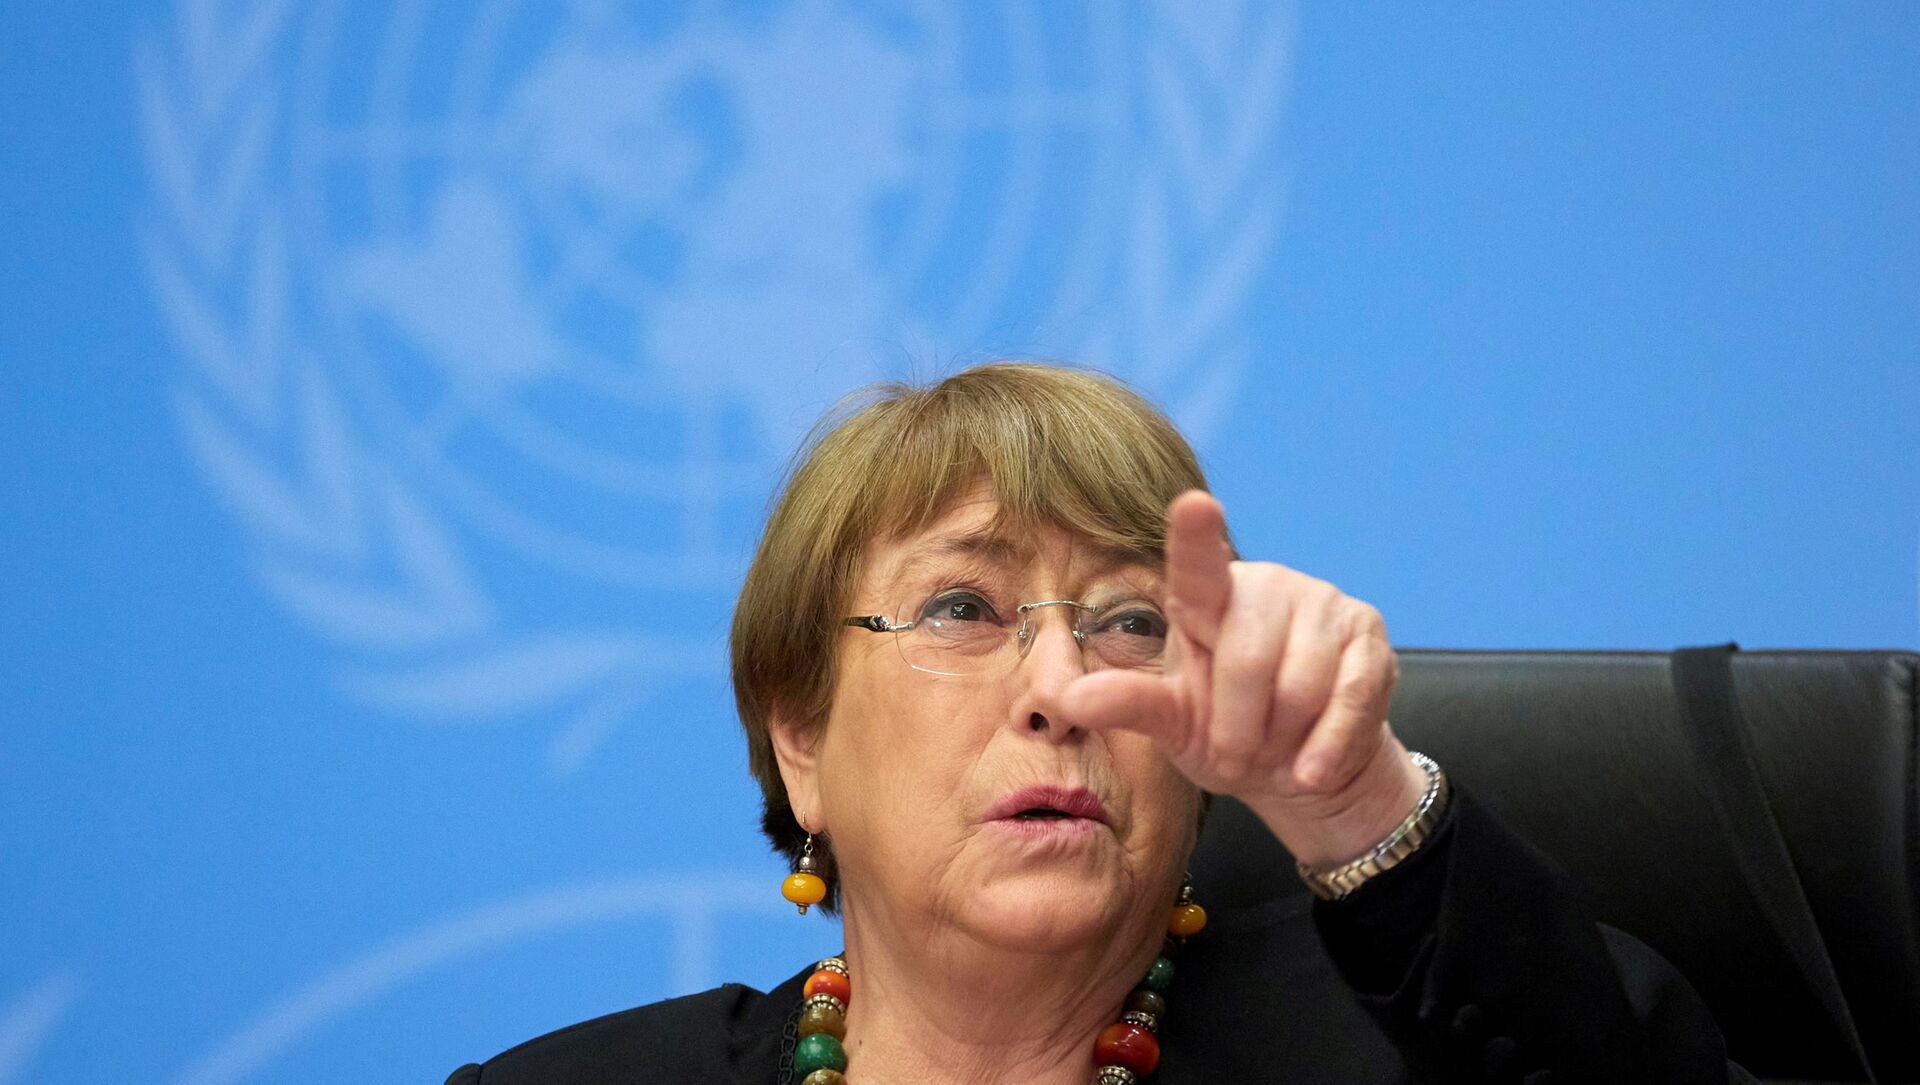 FILE PHOTO: UN High Commissioner for Human Rights Michelle Bachelet gestures during a news conference at the European headquarters of the United Nations in Geneva, Switzerland, 9 December 2020. - Sputnik International, 1920, 24.07.2021